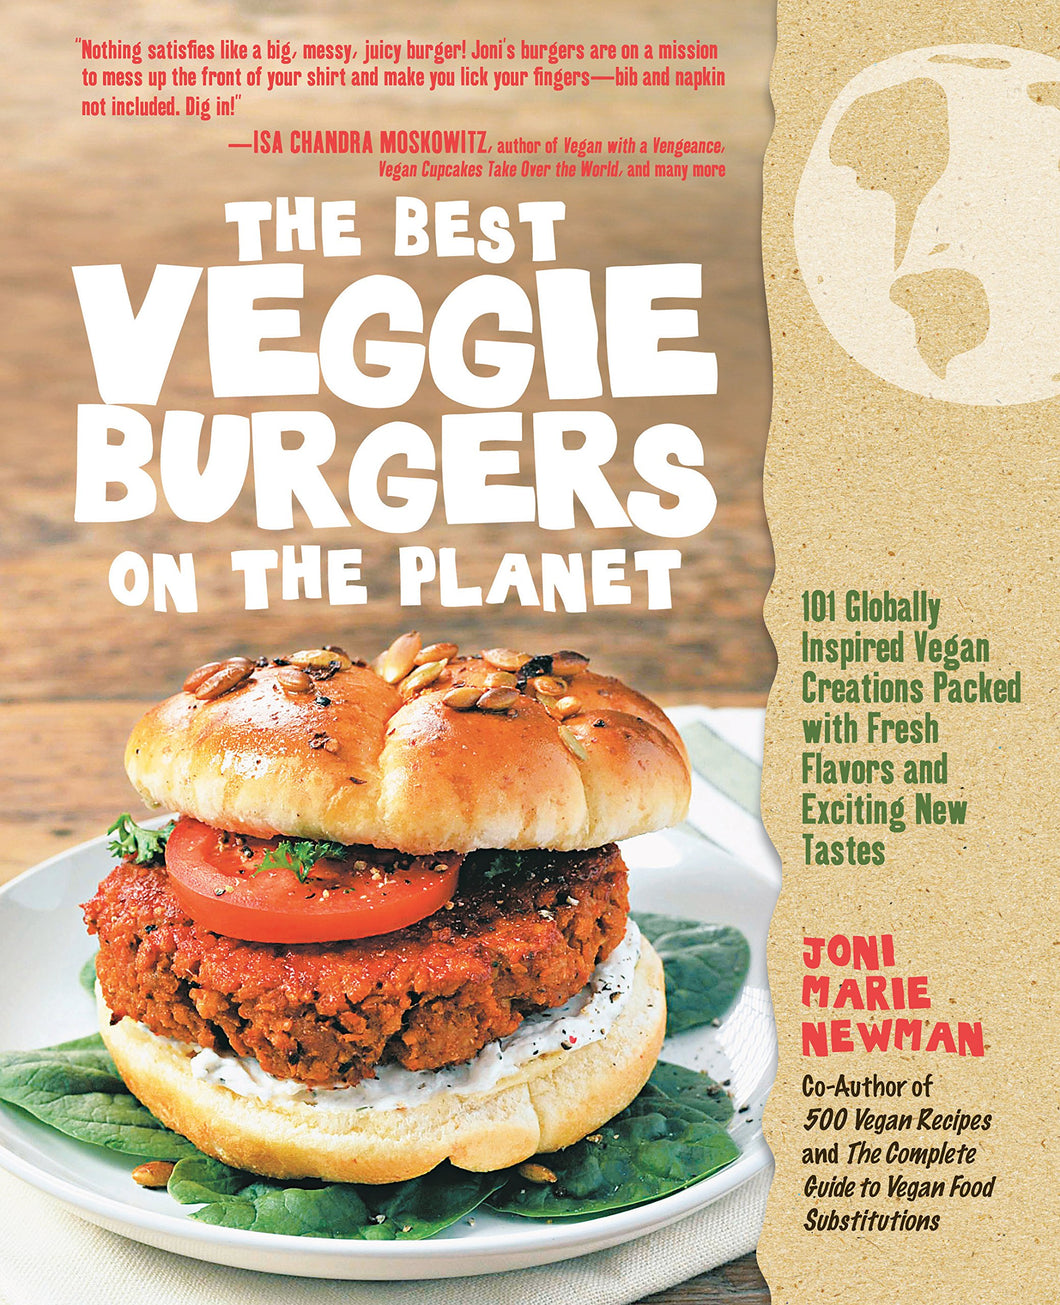 The Best Veggie Burgers on the Planet: 101 Globally Inspired Vegan Creations Packed with Fresh Flavors and Exciting New Tastes - by Joni Marie Newman